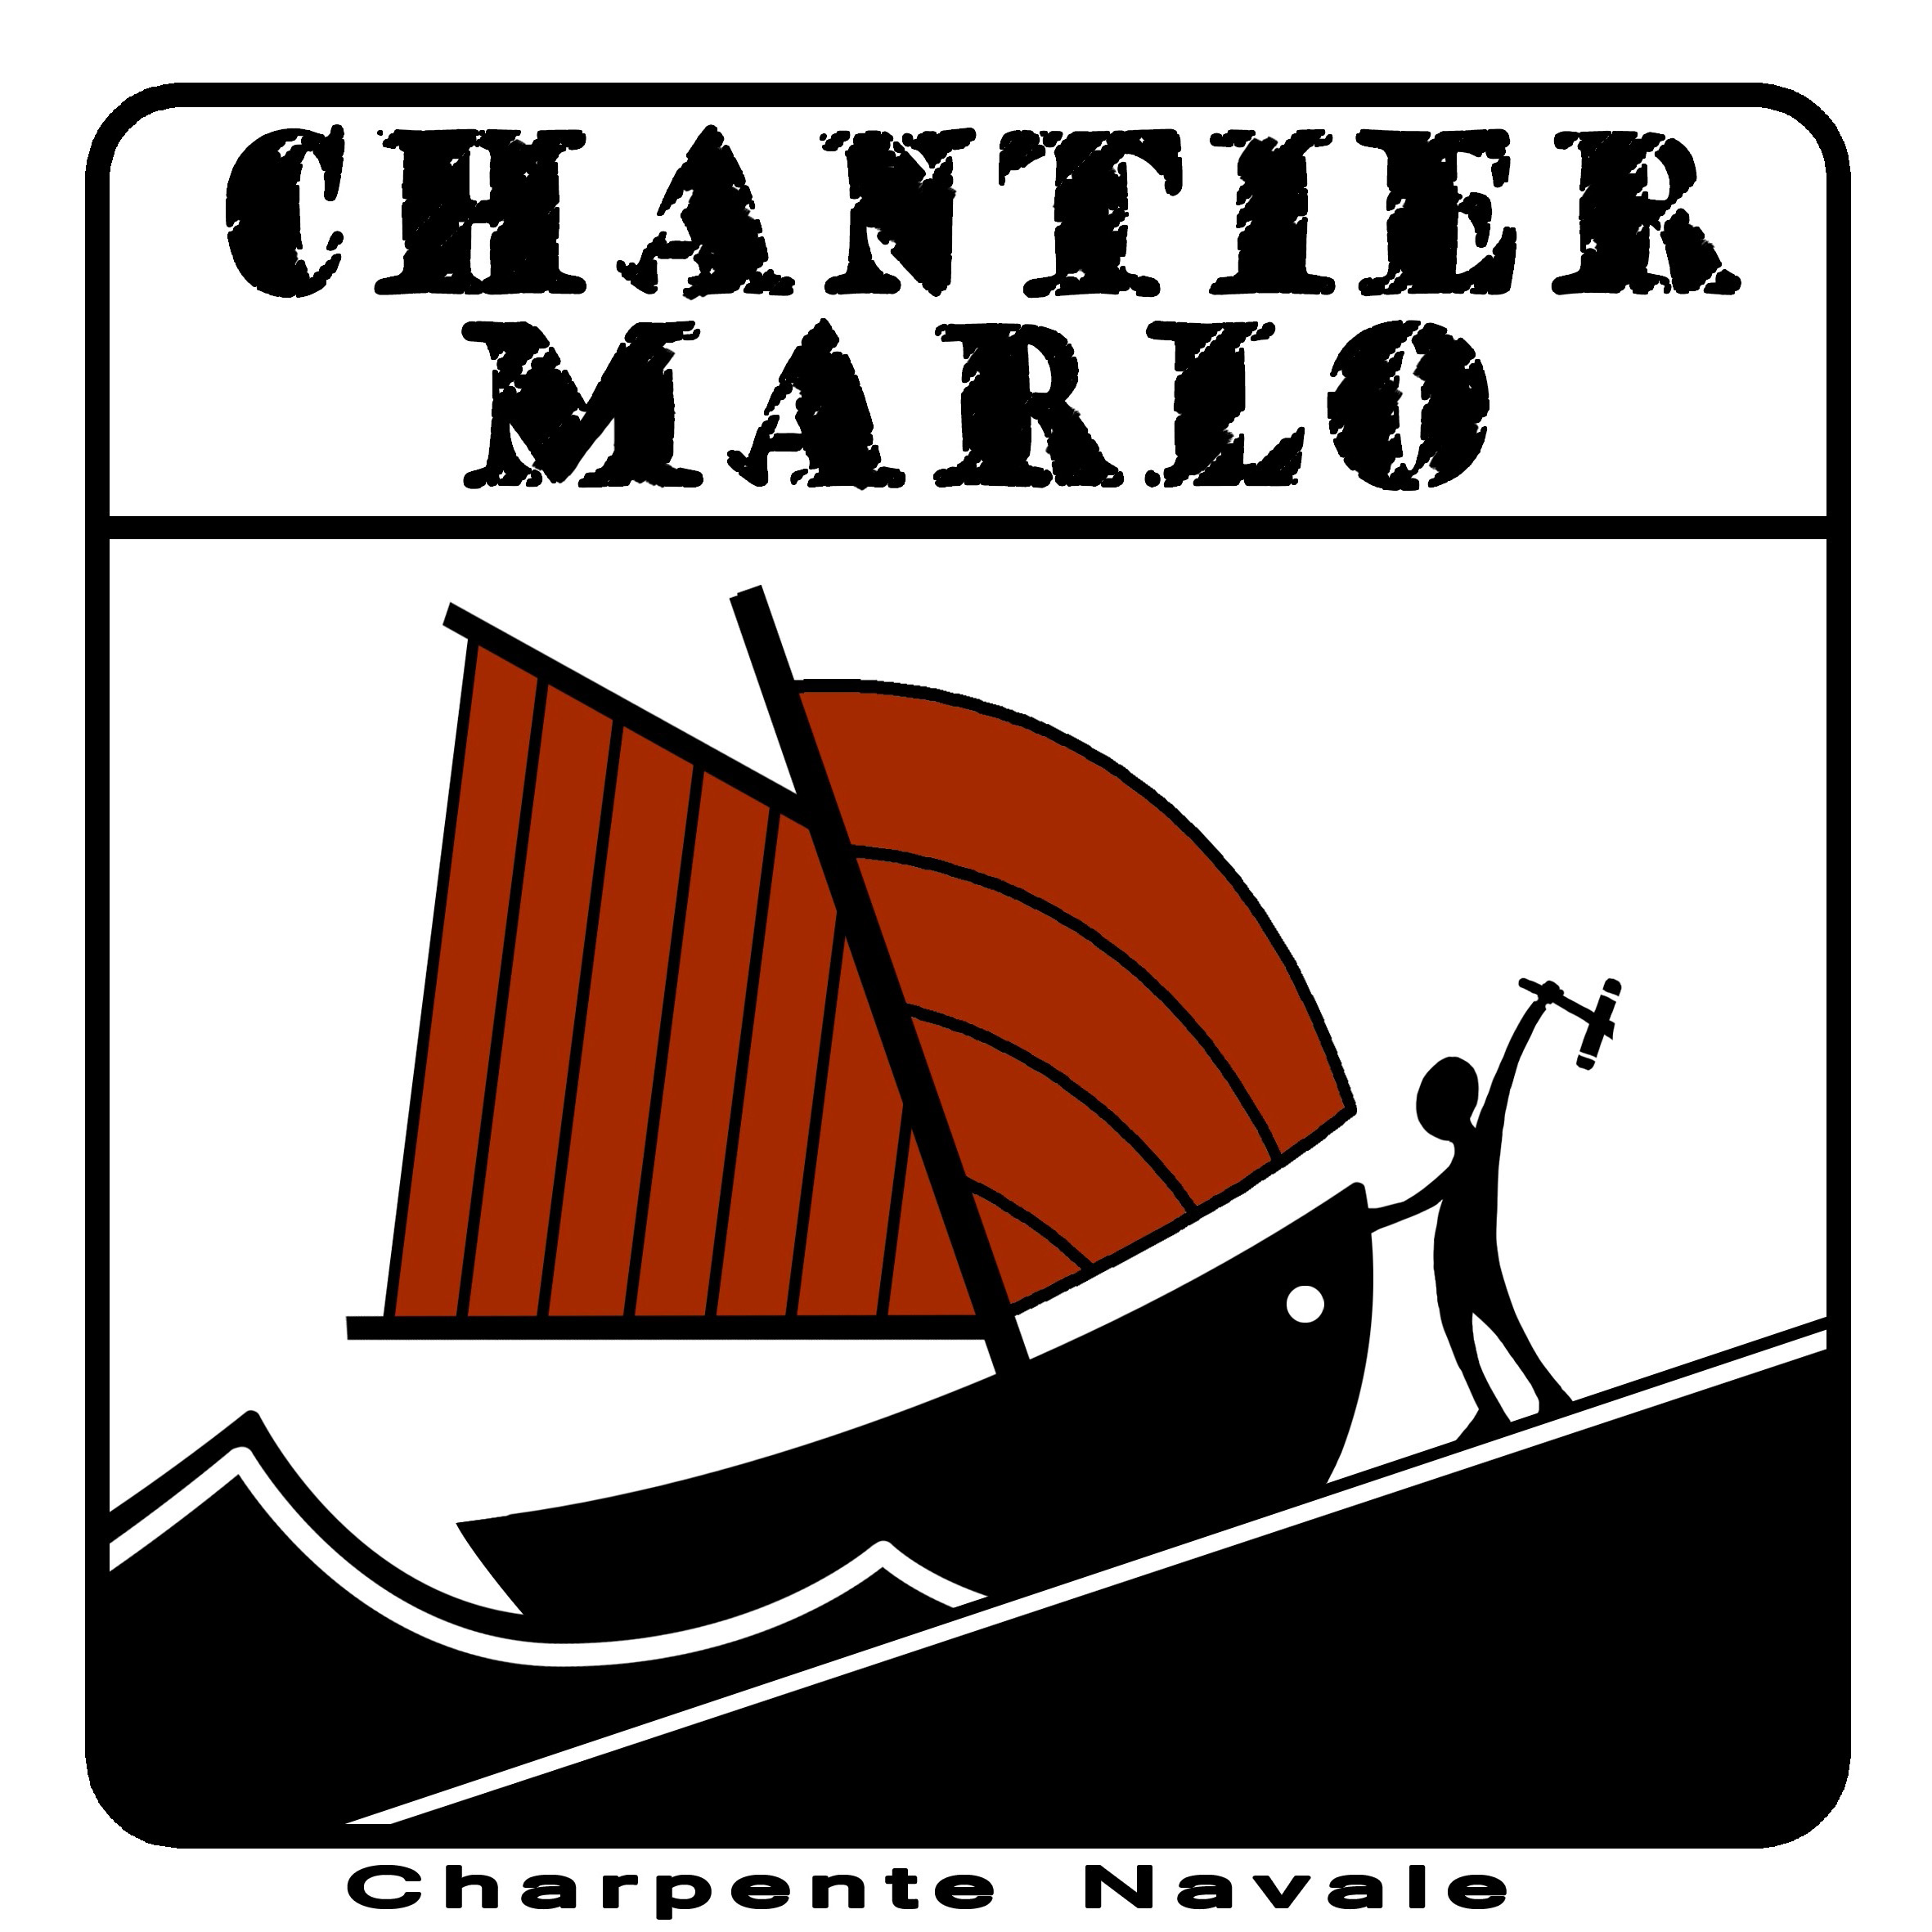 charpentierdemarine